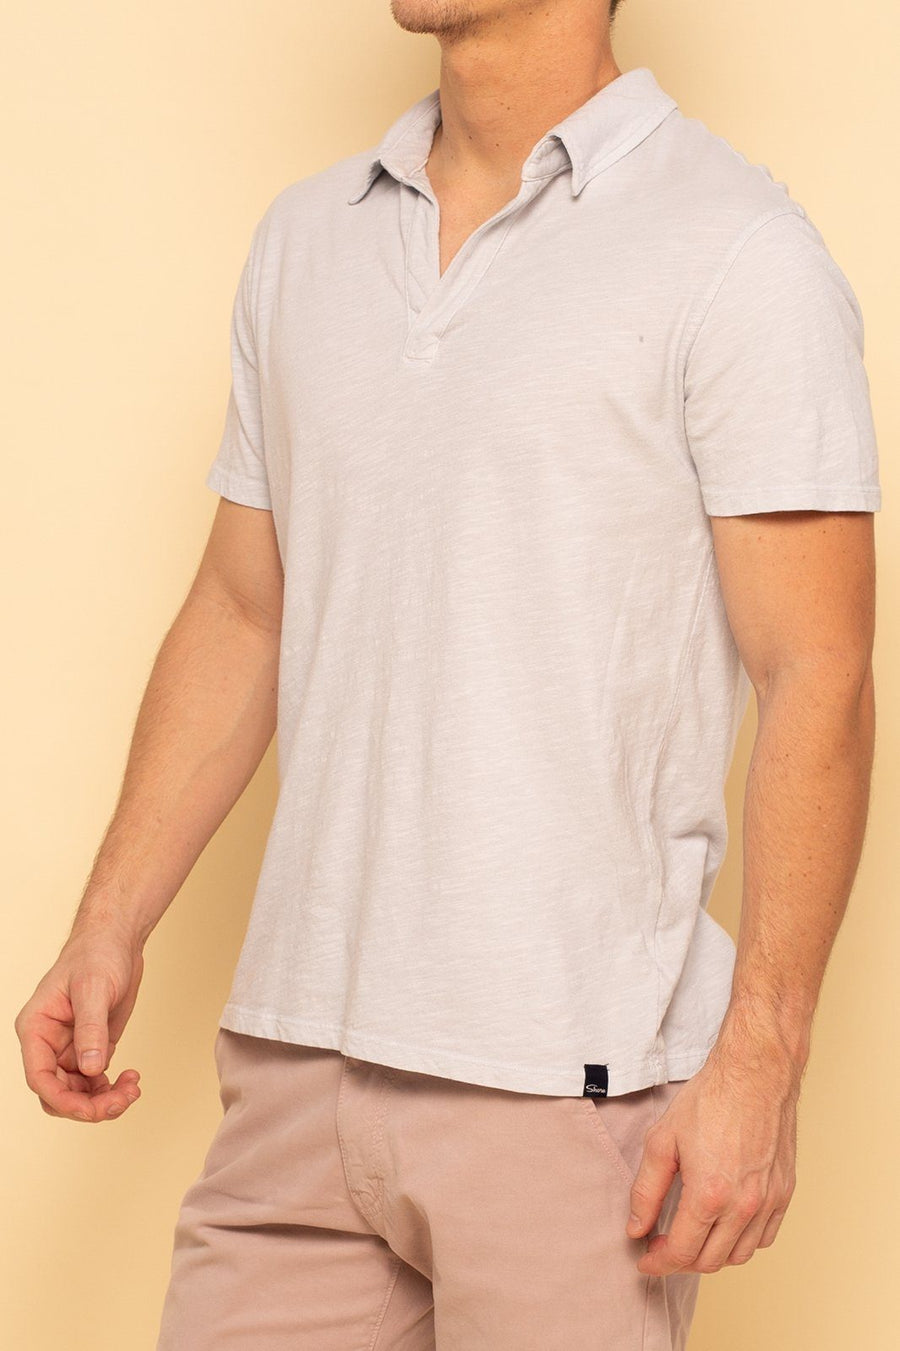 Relaxed Cotton Slub Polo - Vapor - Shore